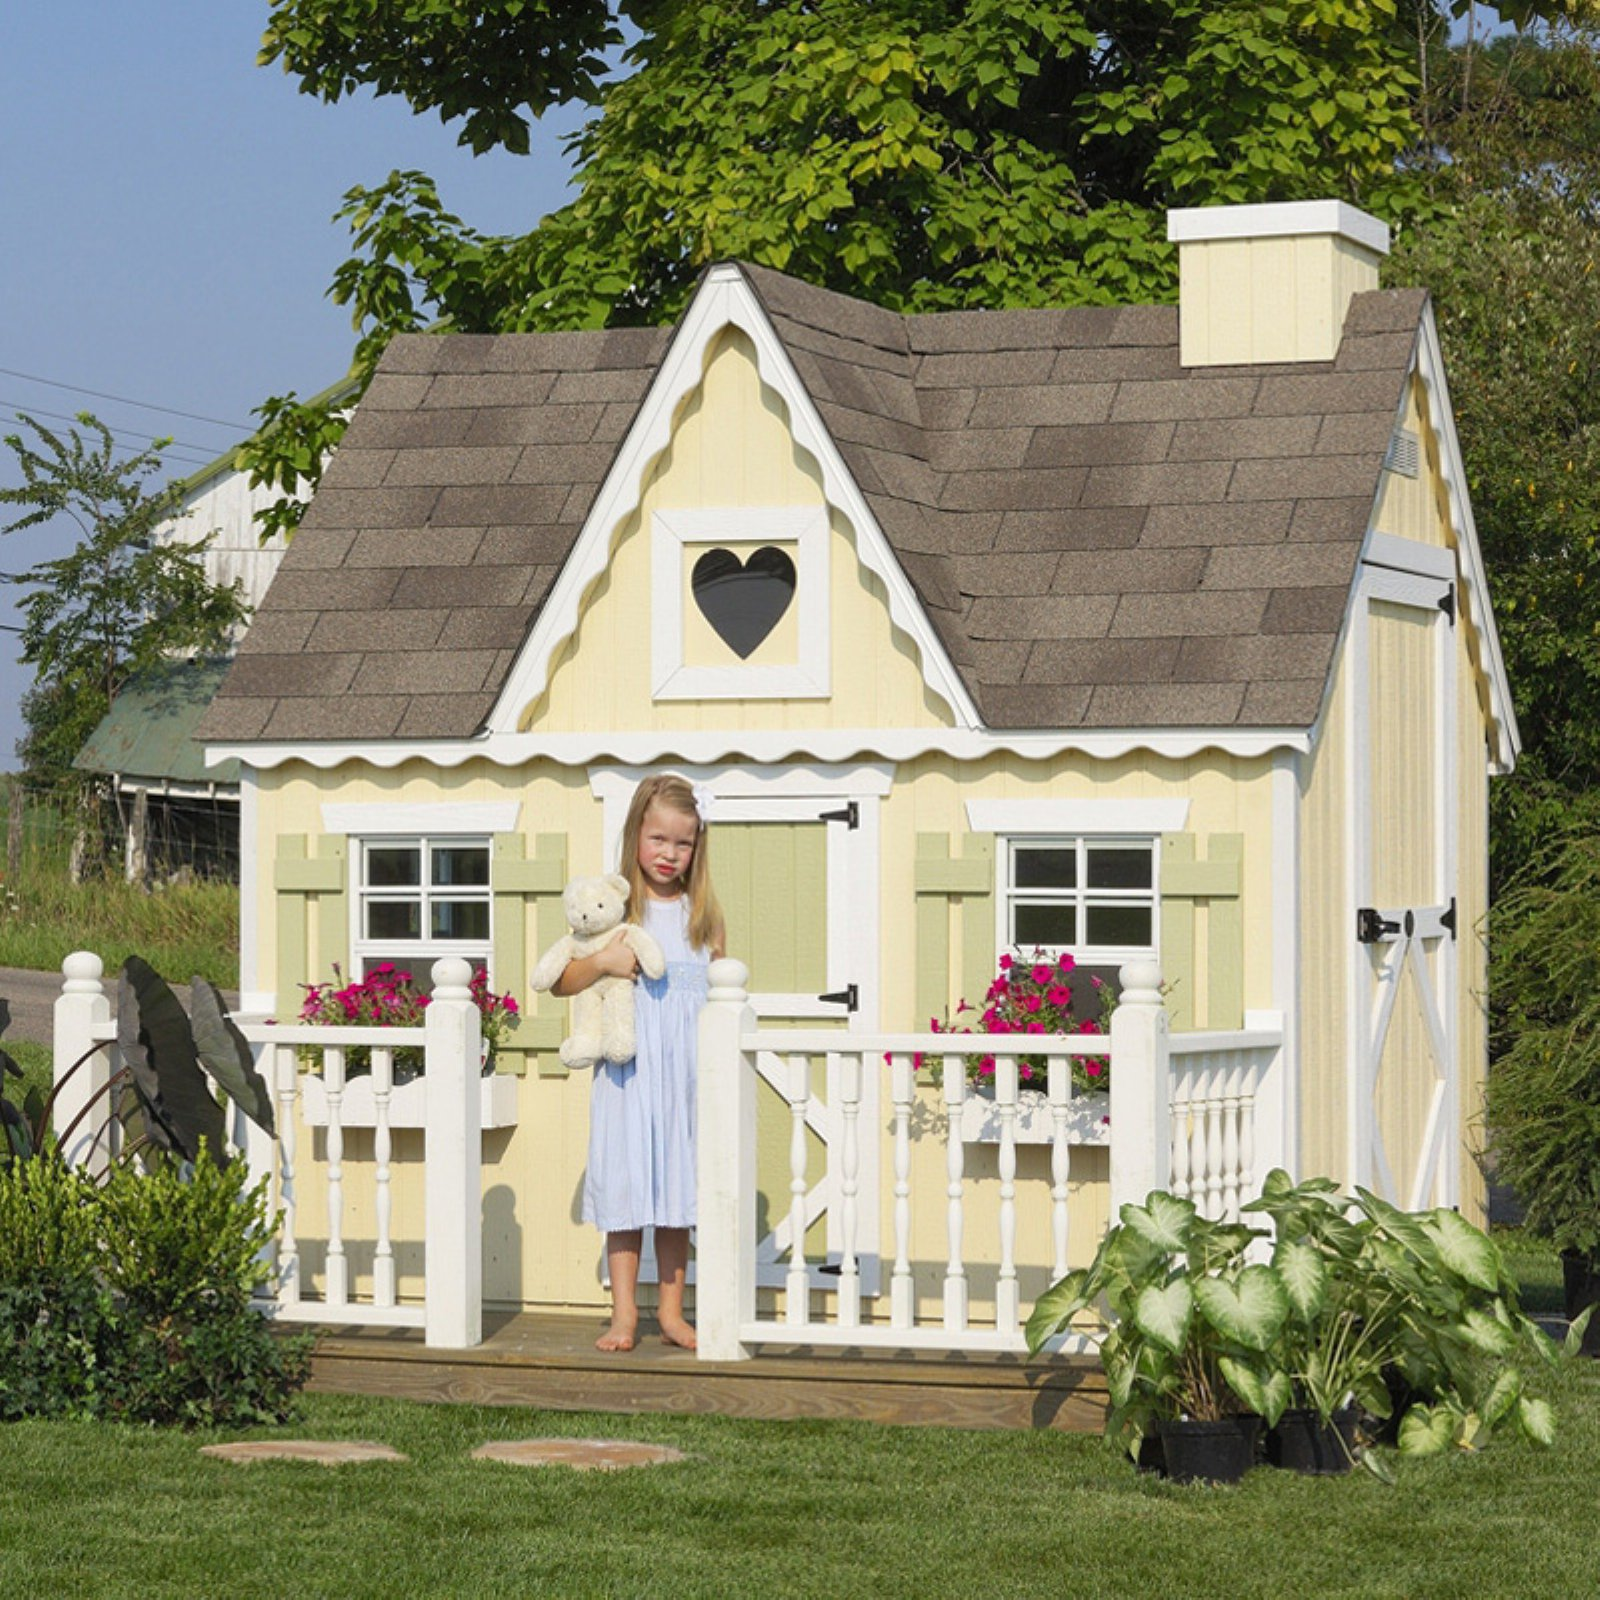 Little Cottage Victorian 6 x 8 ft. Wood Playhouse by